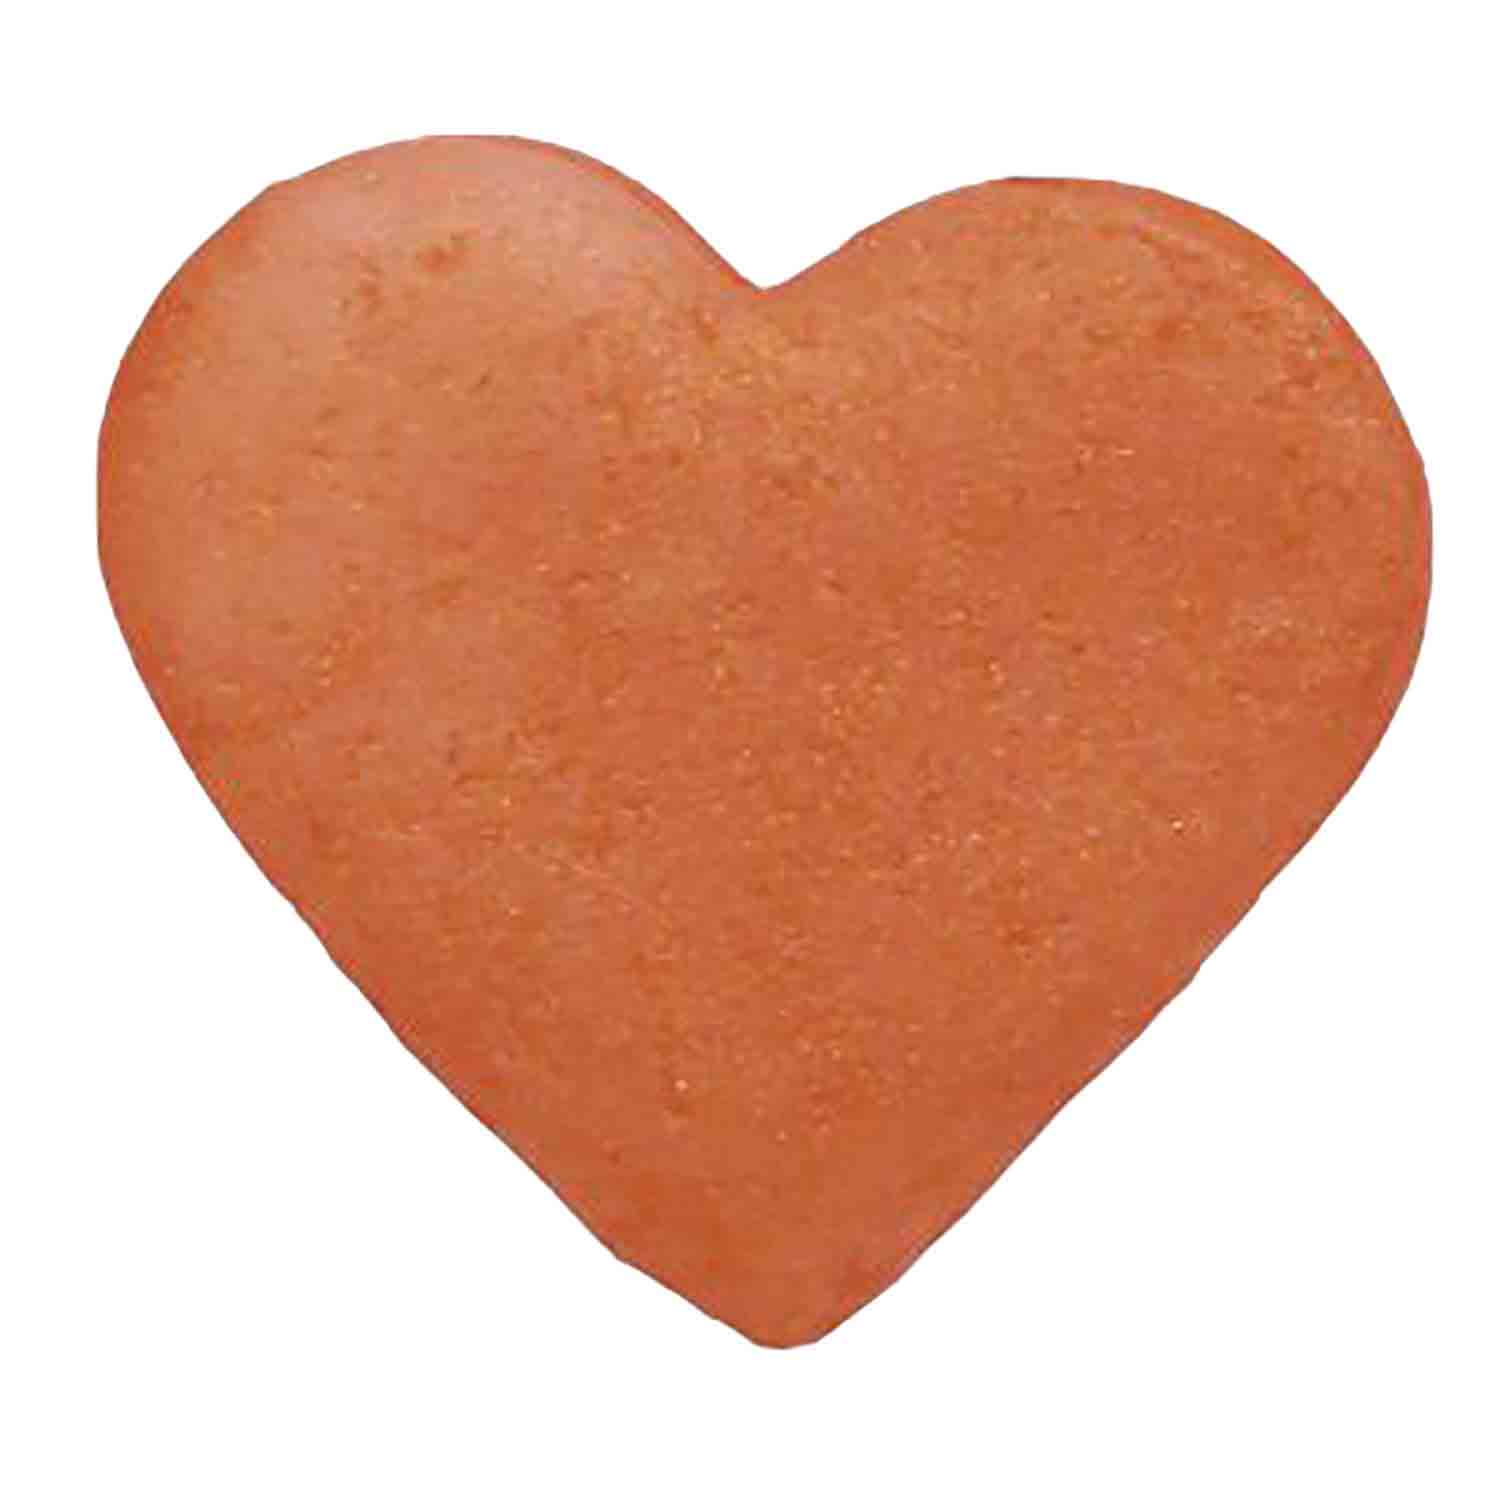 Pumpkin Pie Designer Luster Dust (Replaces Spiced Pumpkin 43-1228)